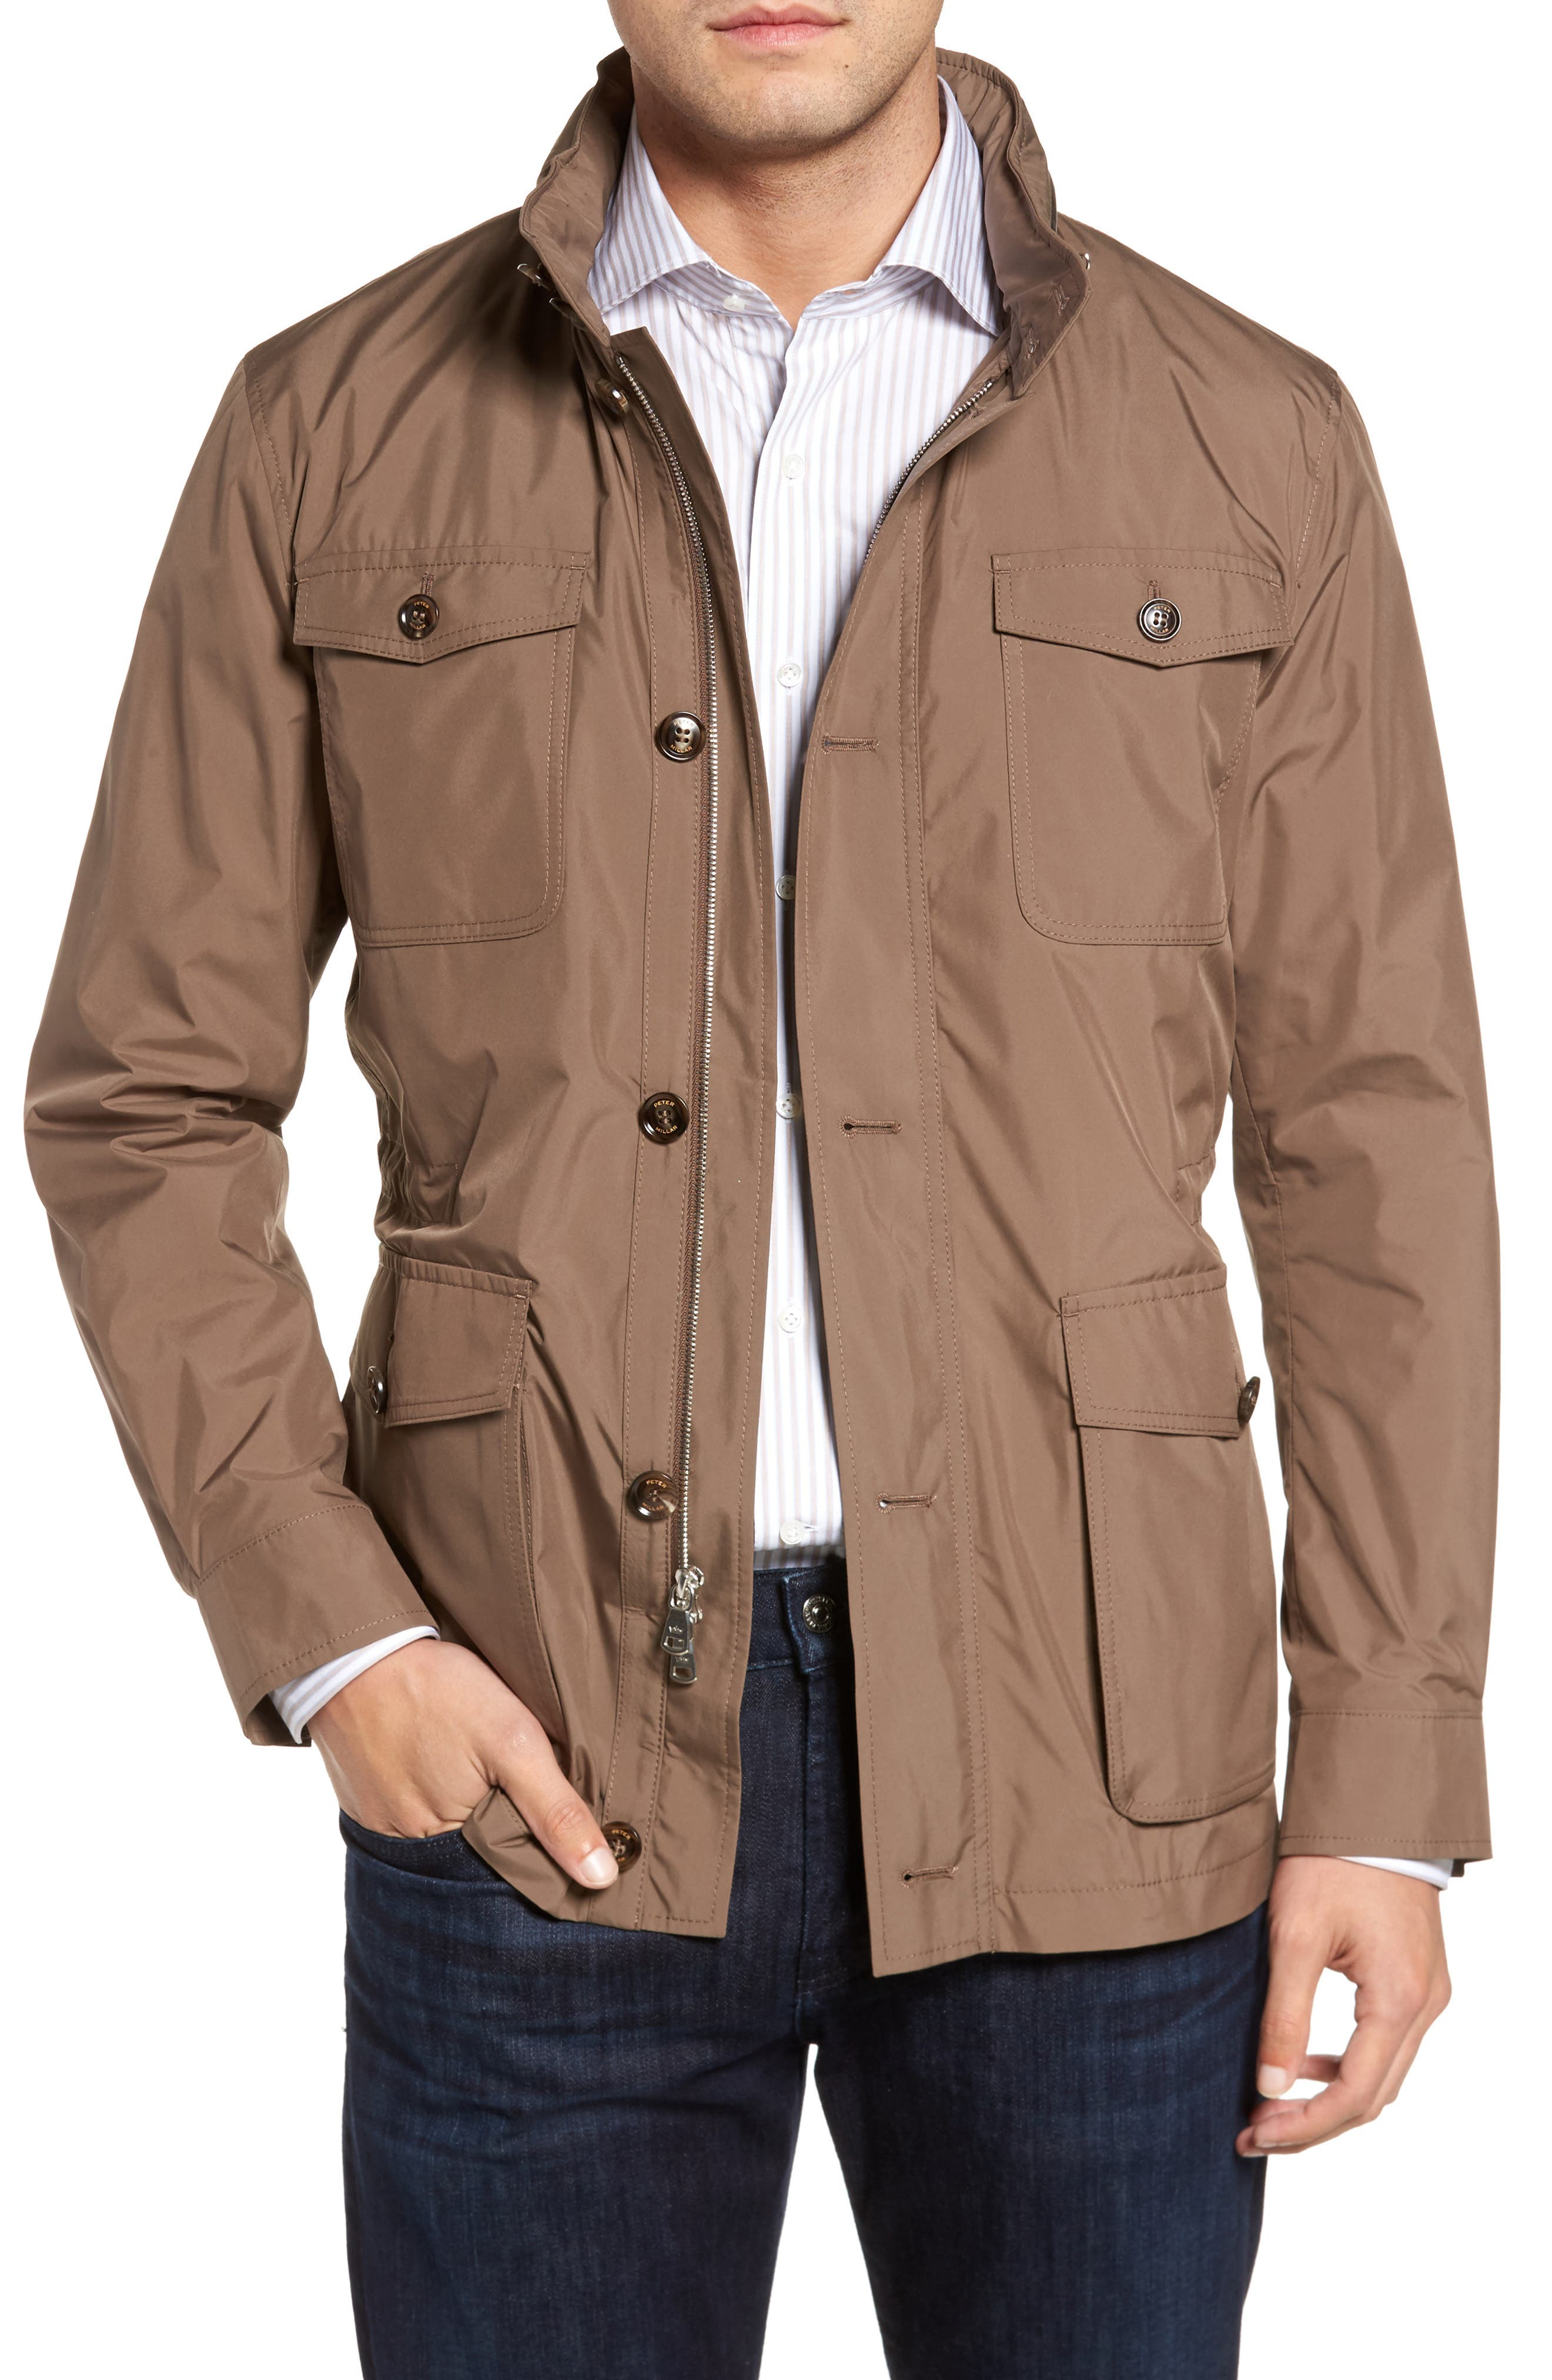 All Weather Discovery Jacket,                             Main thumbnail 1, color,                             Dune Surf